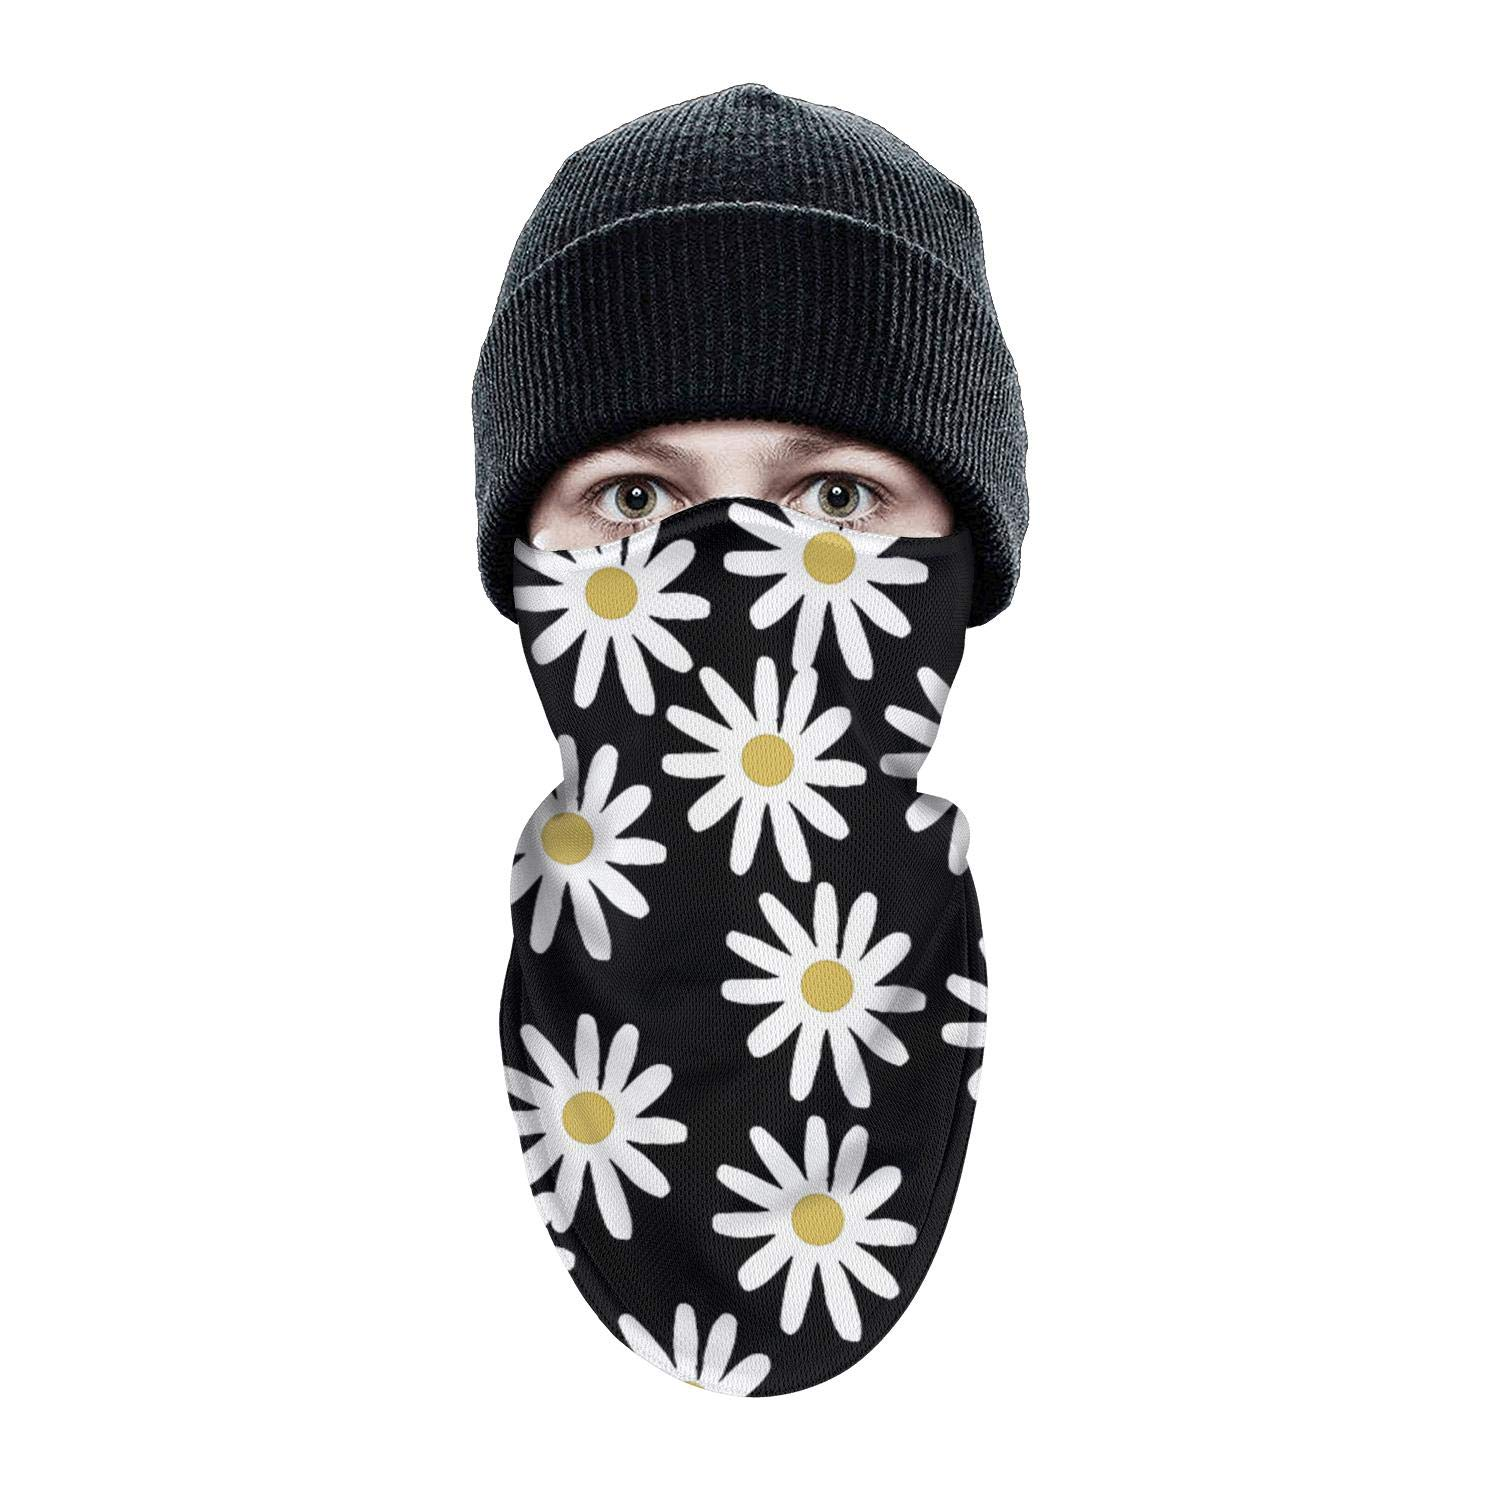 isjdsoa Love Daisy Floral Balck Ski Mask Men Women Balaclava Mask for Cold Winter Weather,Ski and Snowboard